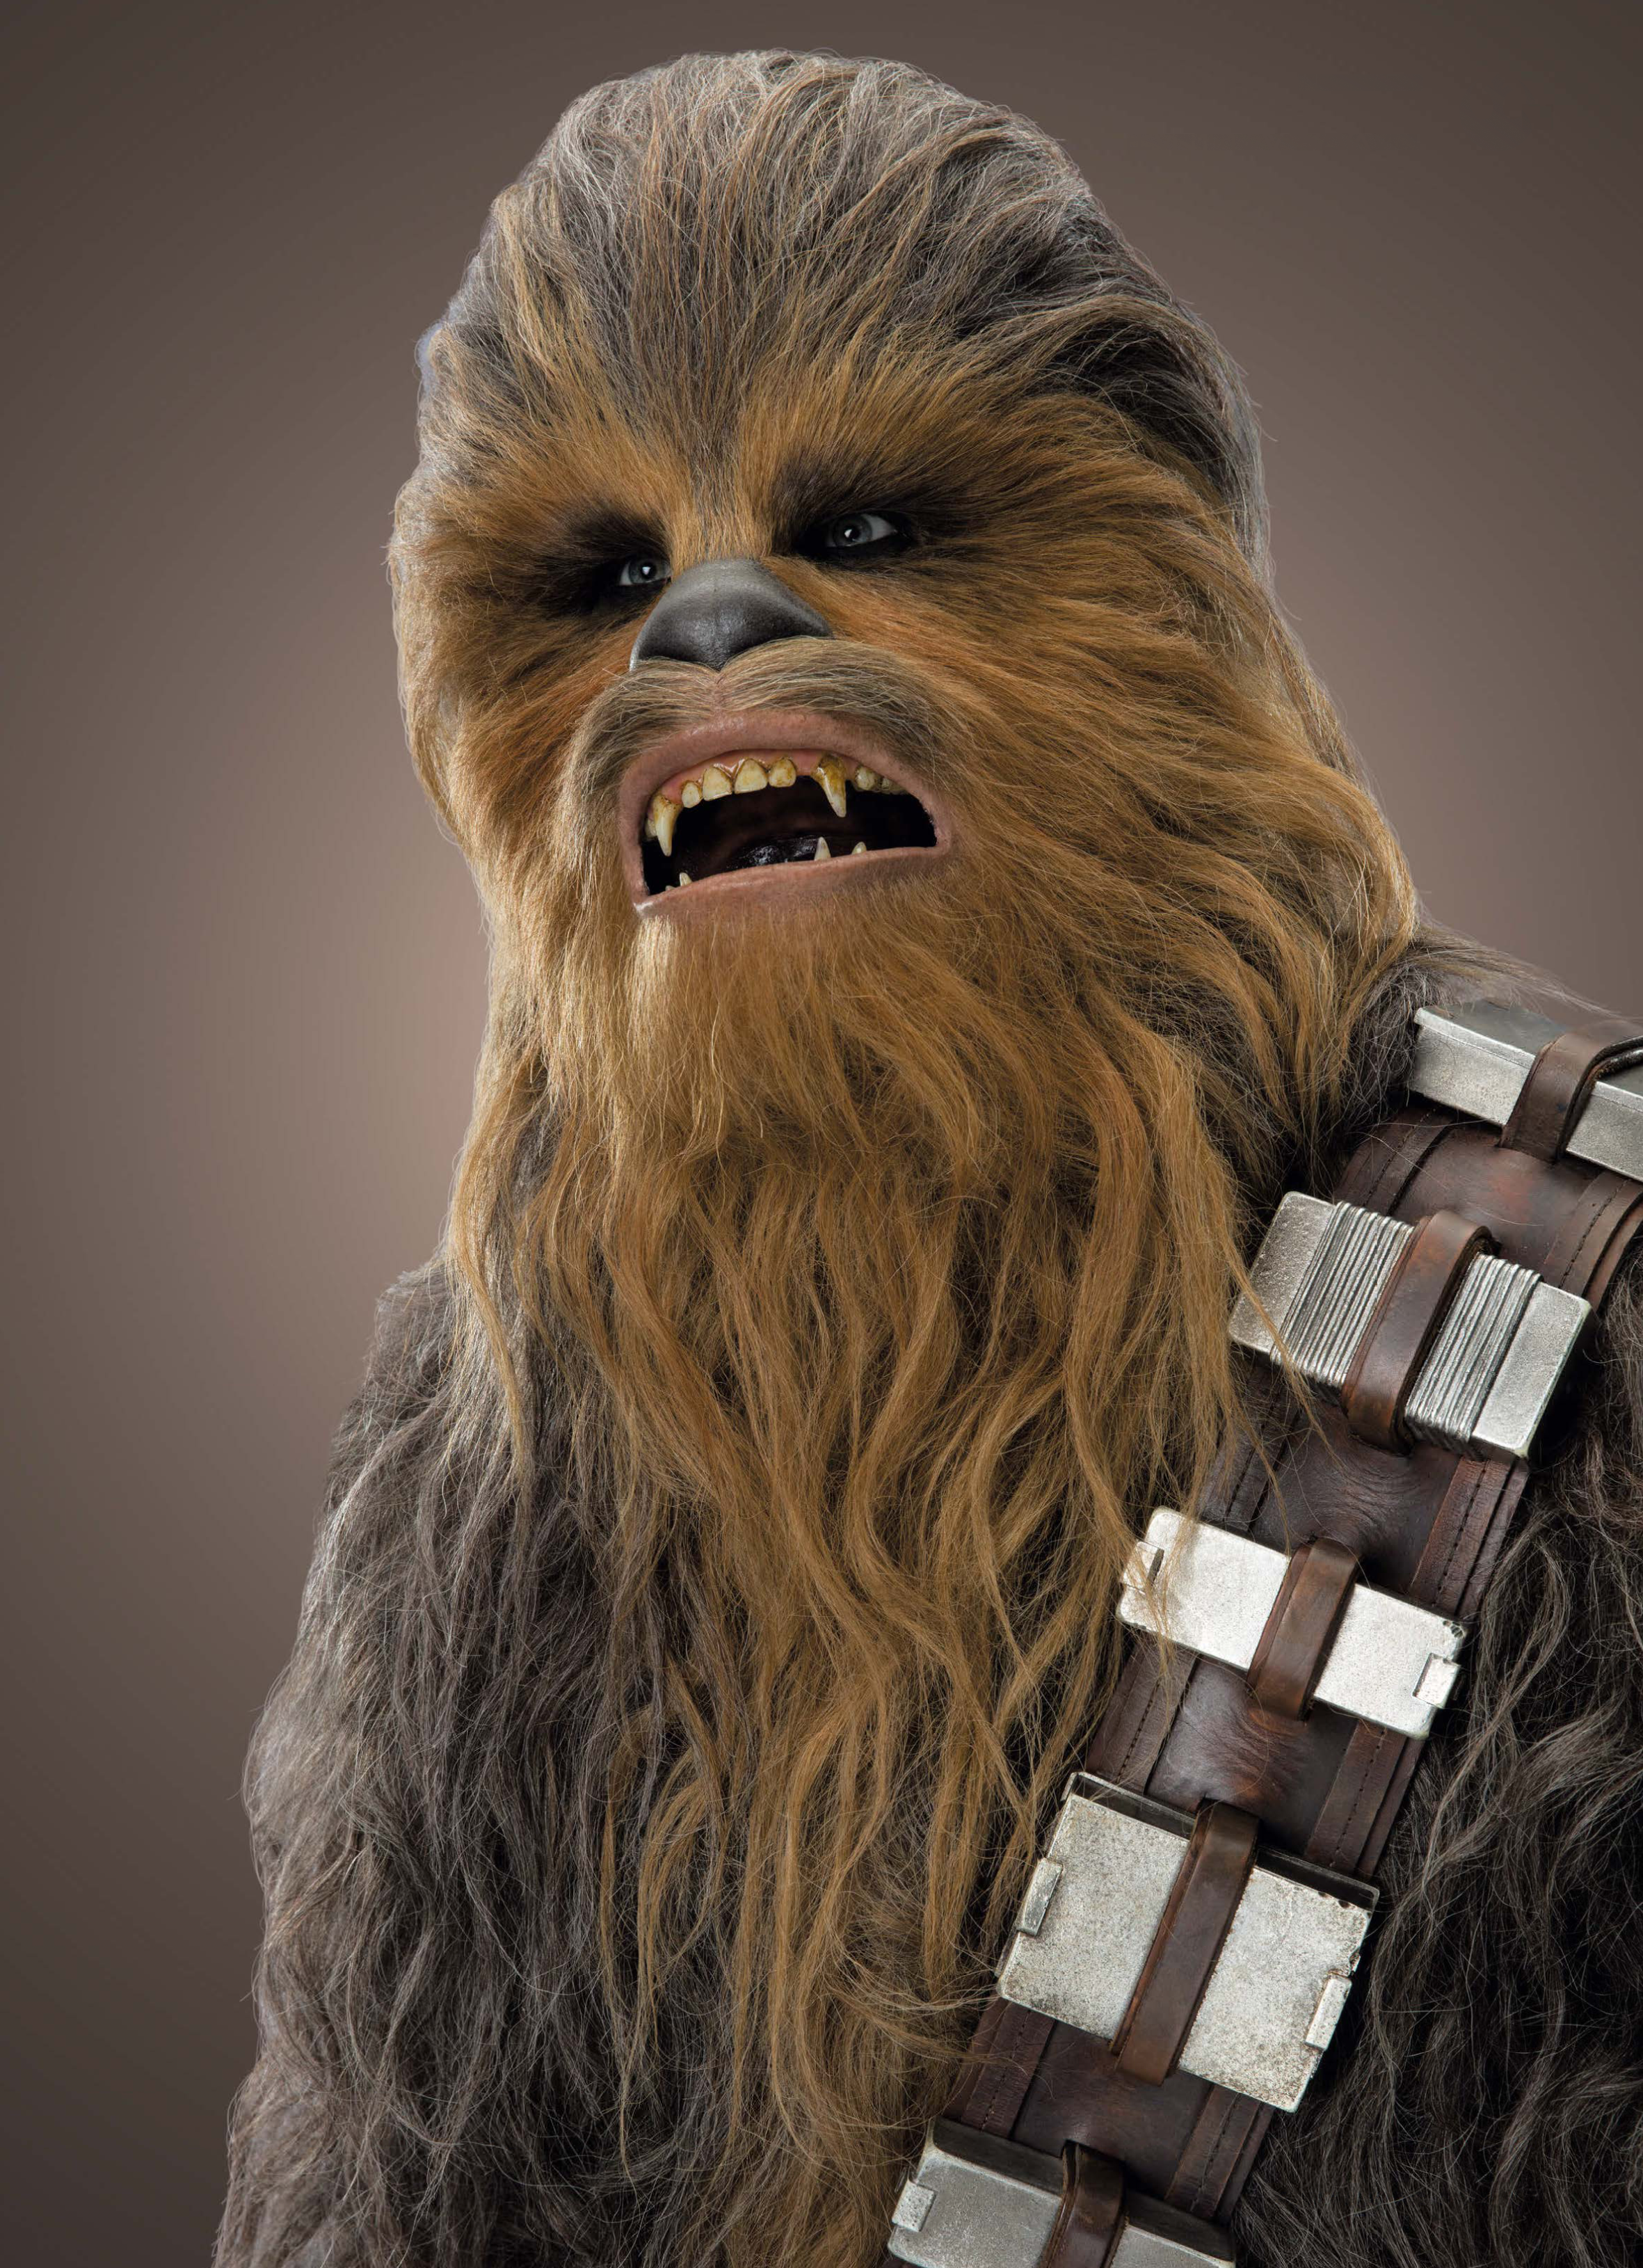 chewbacca wookieepedia fandom powered by wikia. Black Bedroom Furniture Sets. Home Design Ideas